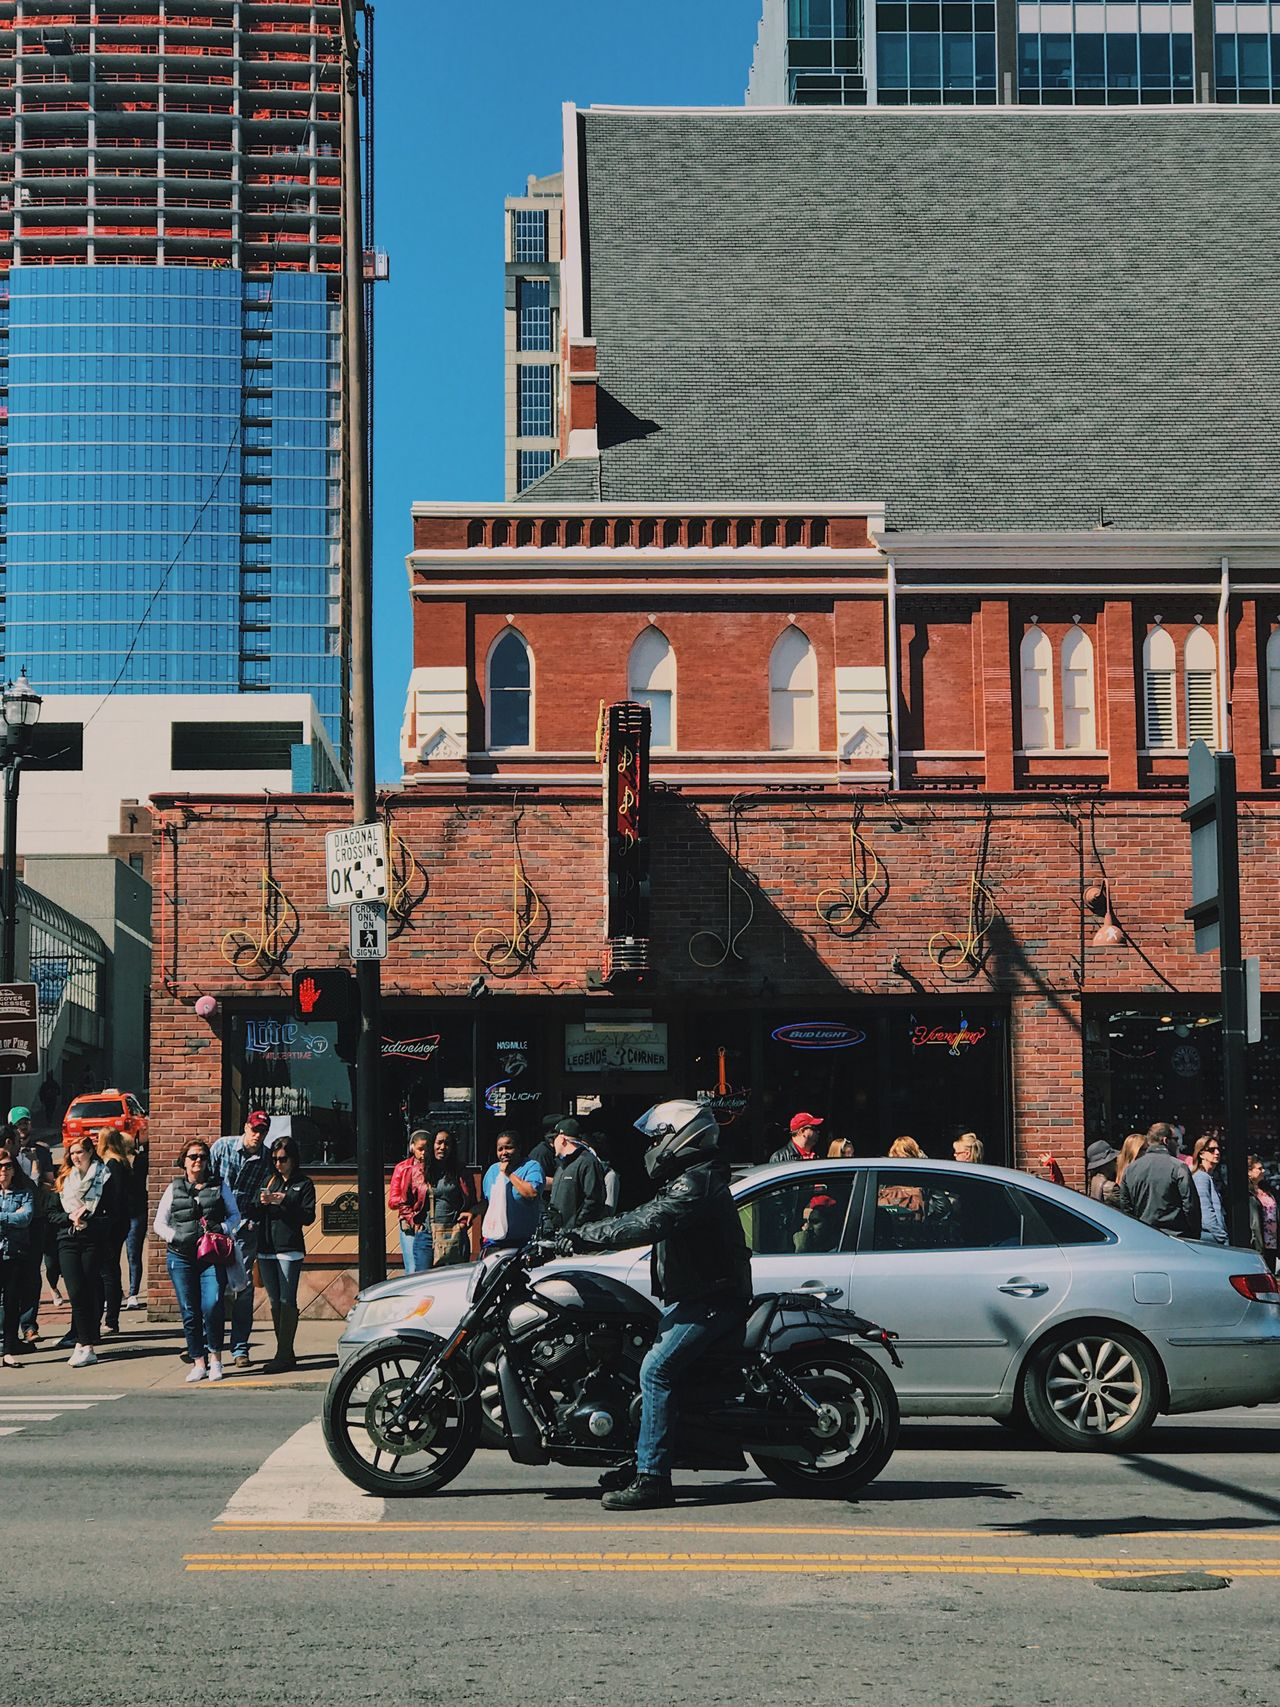 Building Exterior Architecture City Street Land Vehicle Transportation Outdoors City Life Large Group Of People